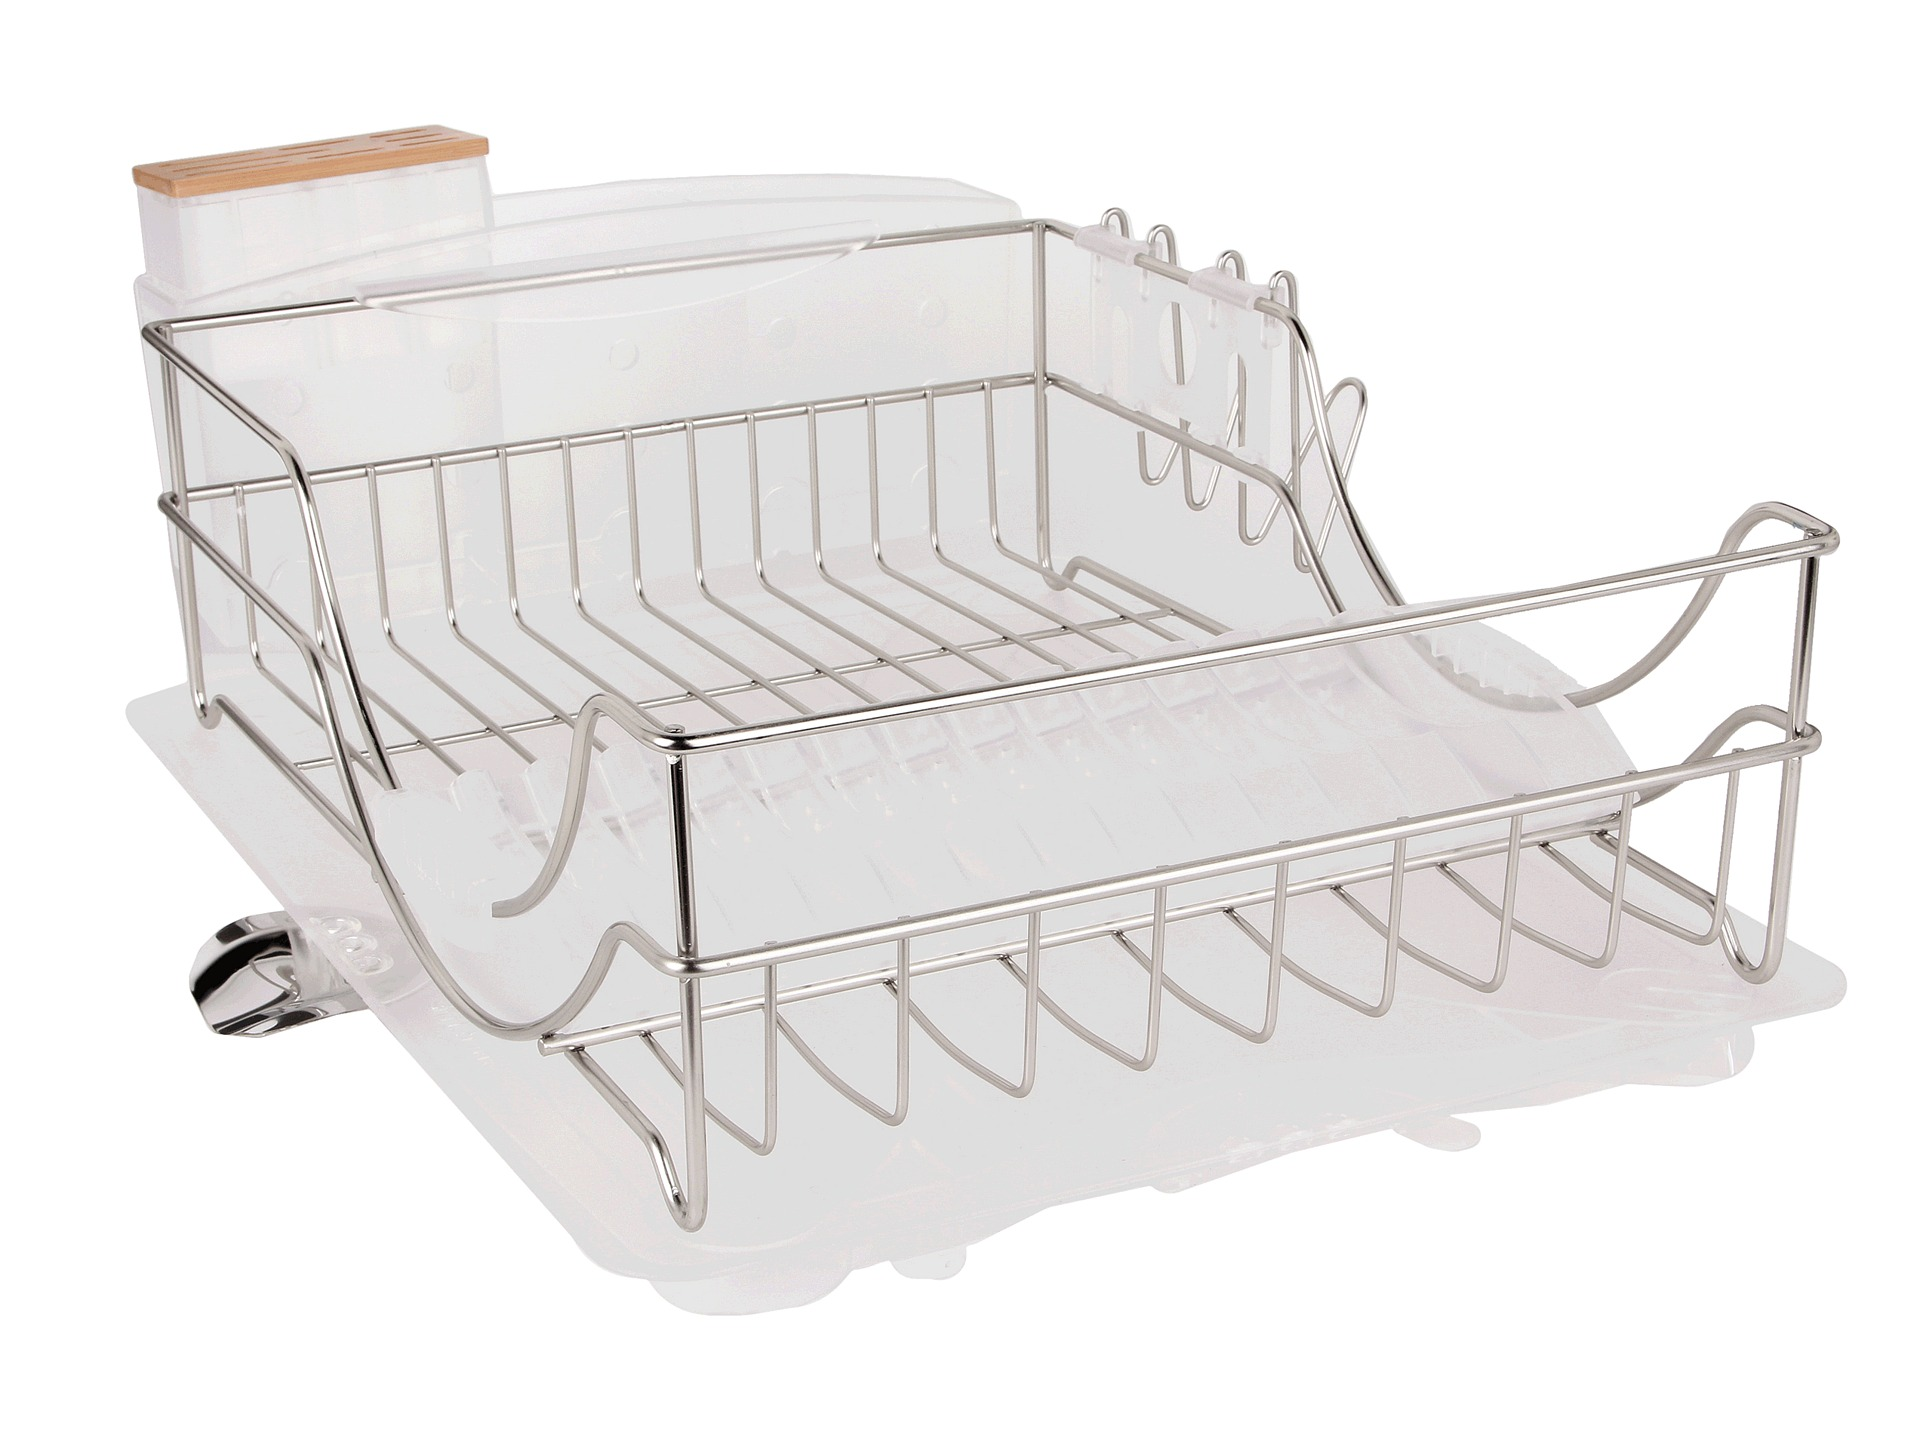 Kitchen Dish Rack Kitchen Dish Drainer Home 2 Tier Dish Rack Basics Drainer Chrome